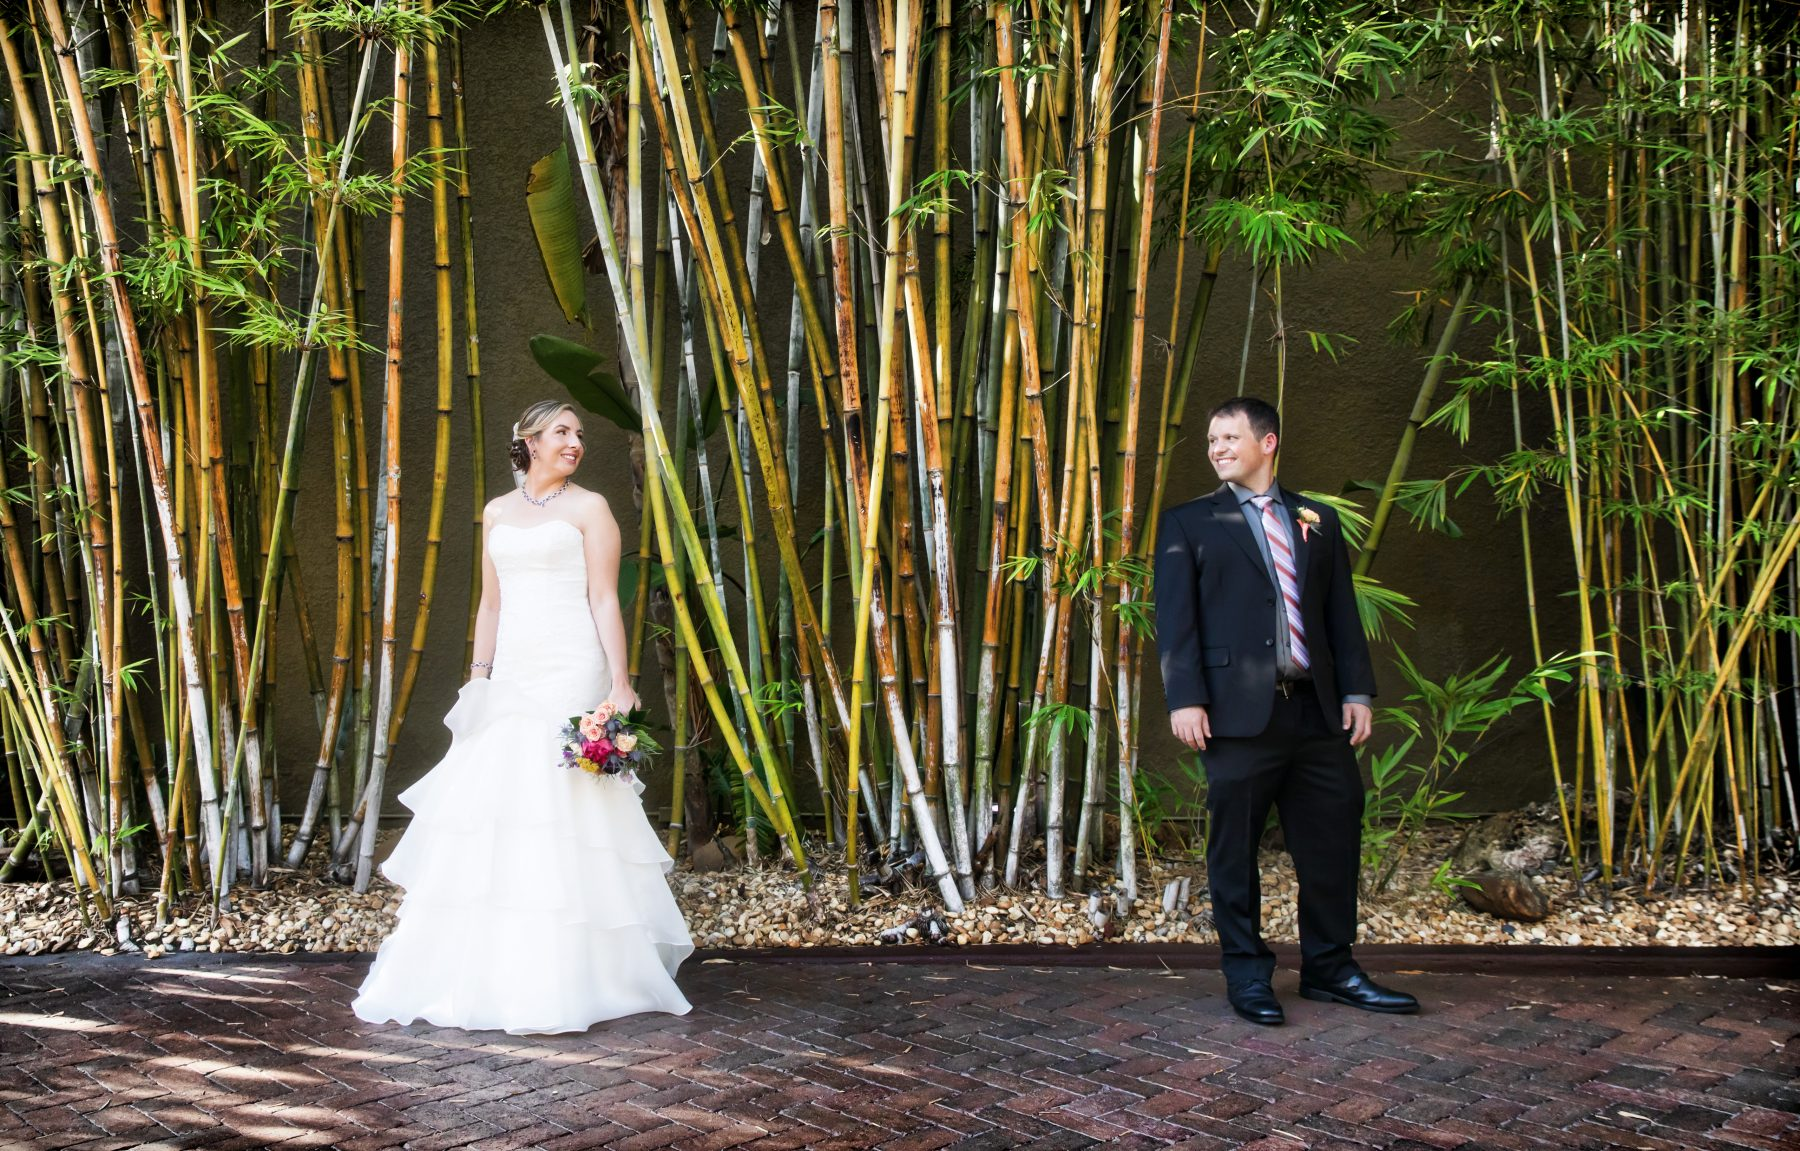 Florida Bride and Groom in romantic bamboo garden at Downtown St. Pete Unique Wedding Venue NOVA 535